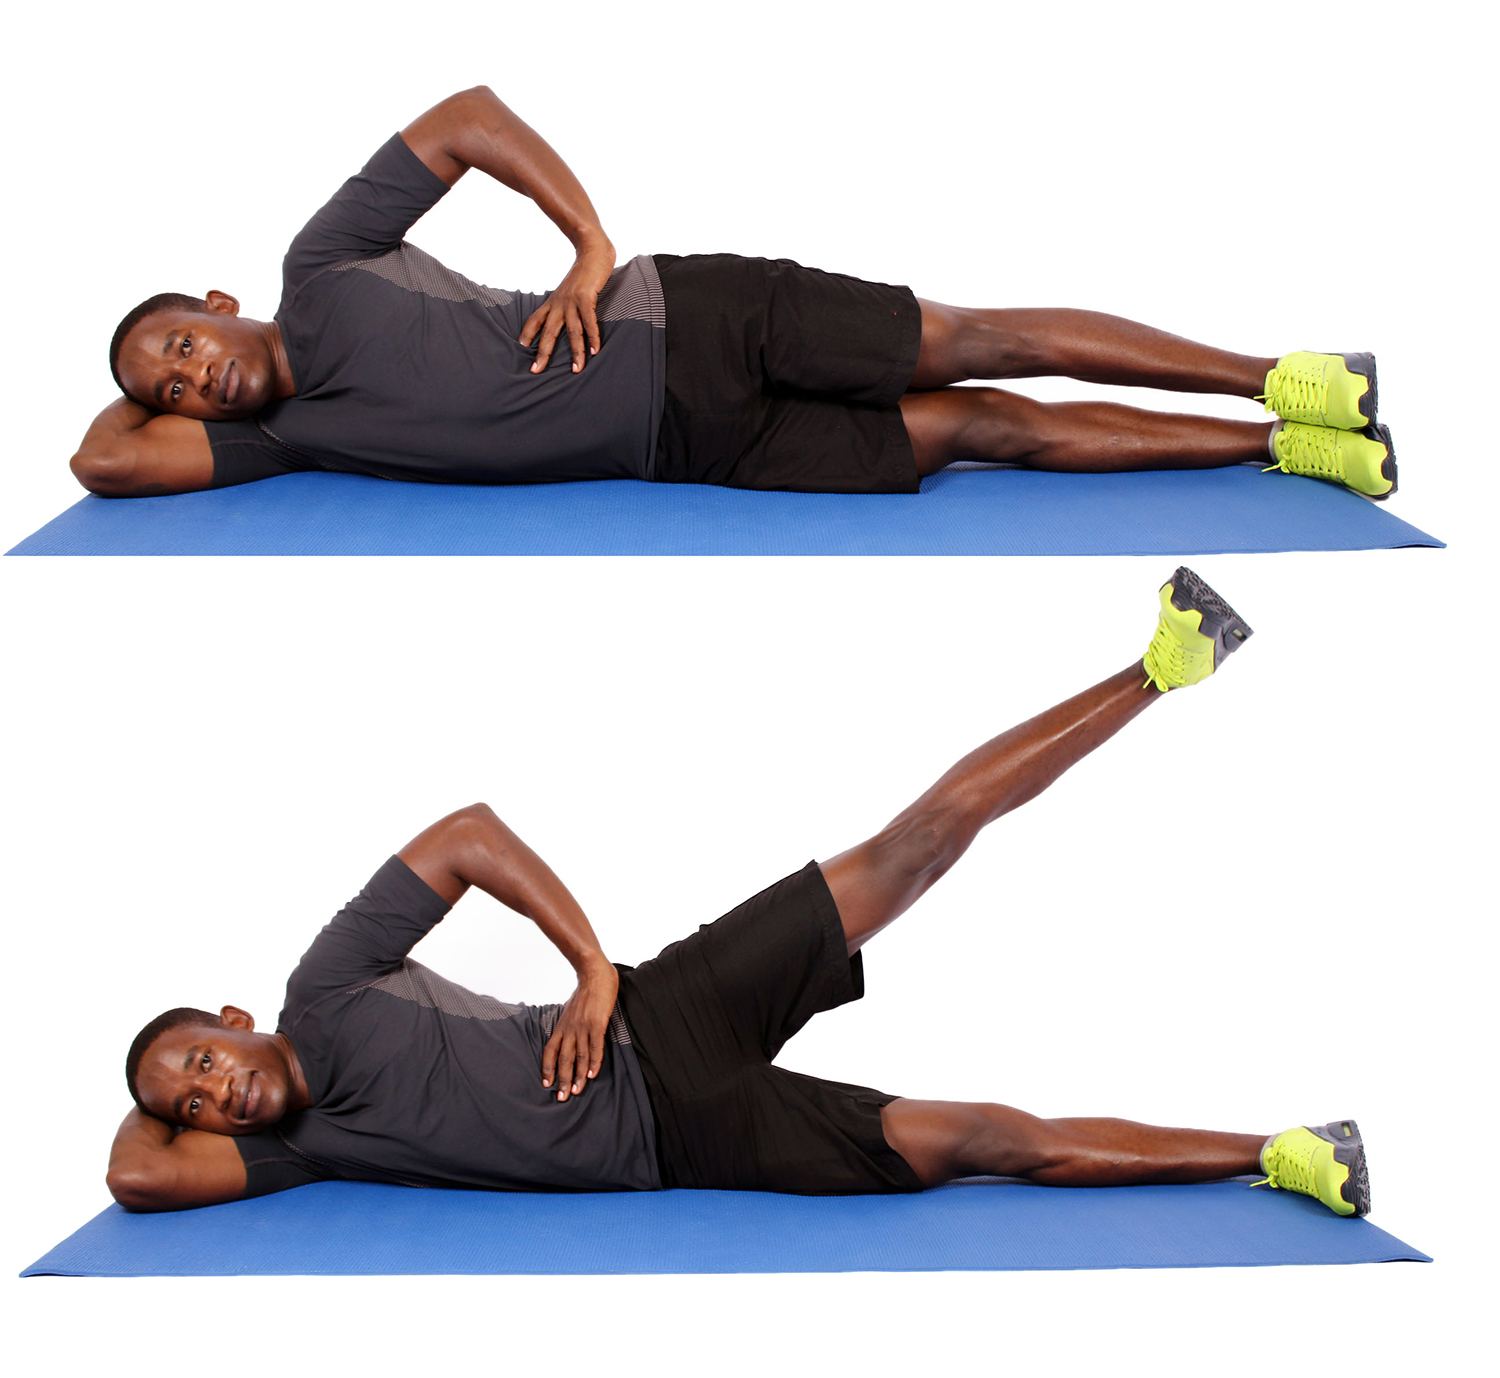 Strengthen The Muscles of the Lower Back and Relief Pain |Leg Lift Exercise